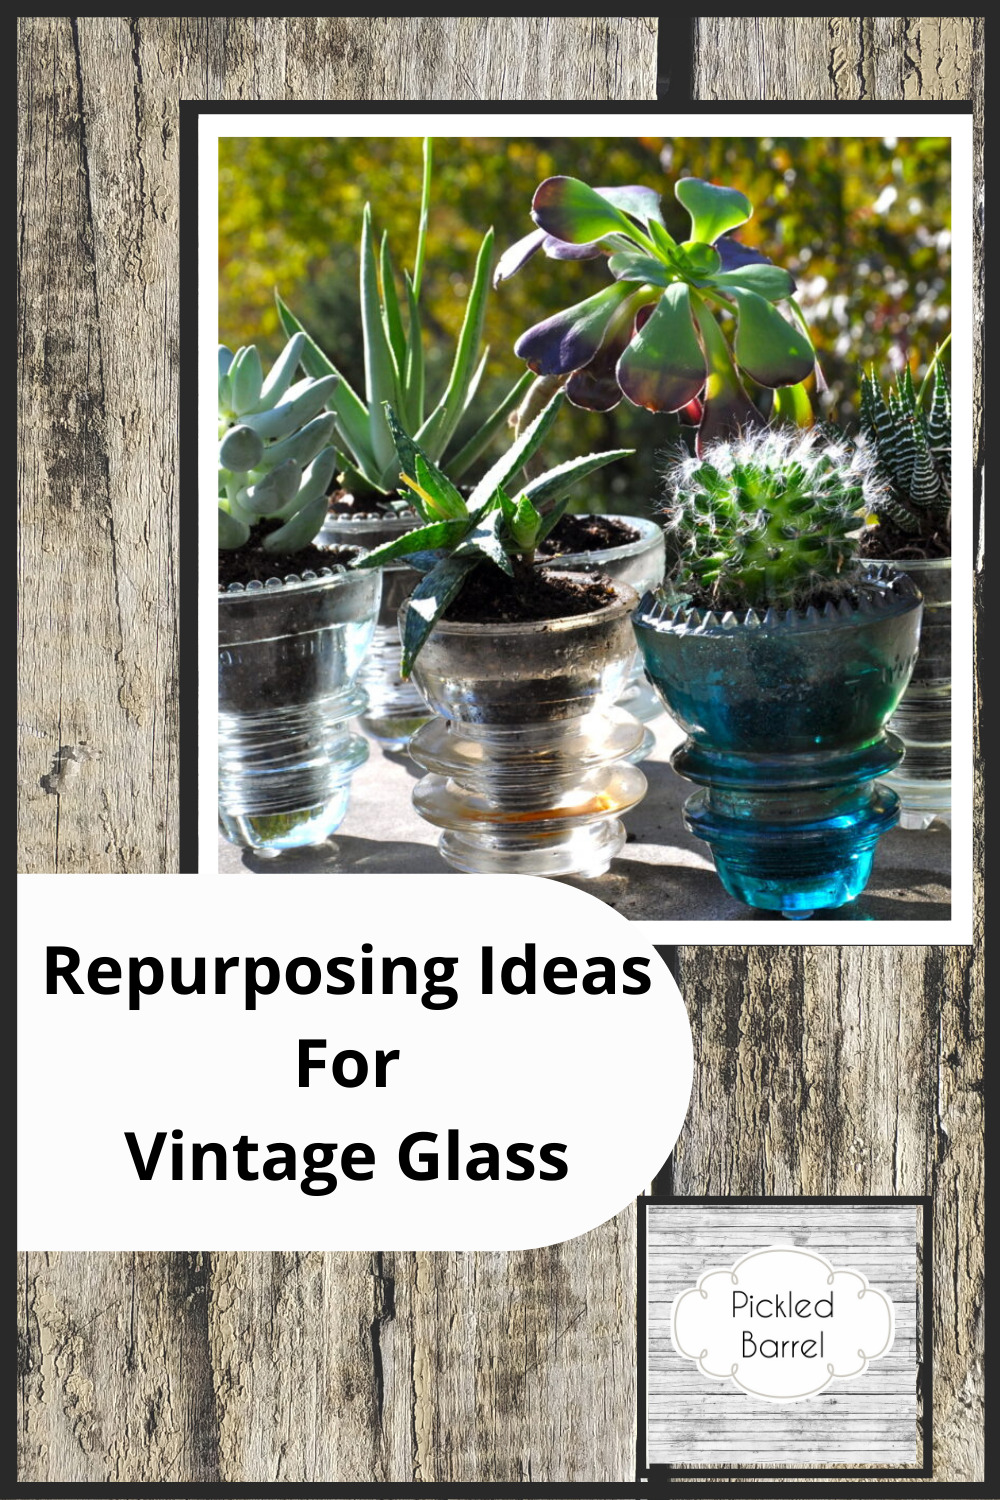 Pickledbarrel.com is THE place to find rustic charm and repurposing projects that look great and are a blast to do. Find ways to completely transform antiques into modern decor. Get started with these repurposing ideas for vintage glass.